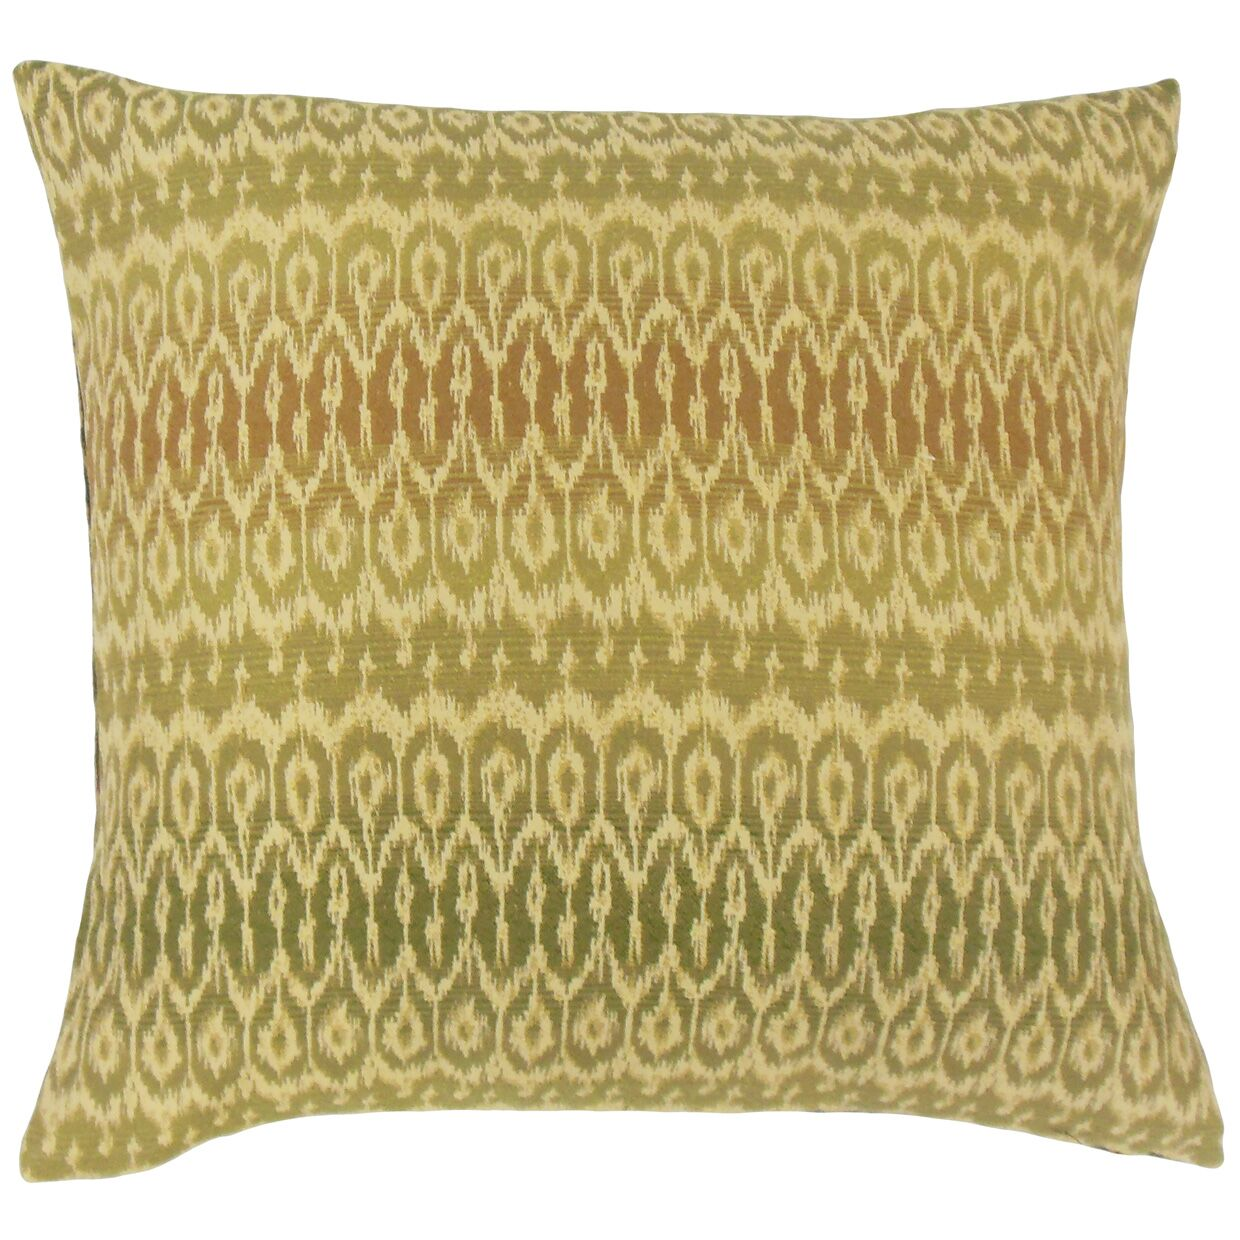 Delray Ikat Bedding Sham Size: Euro, Color: Jungle